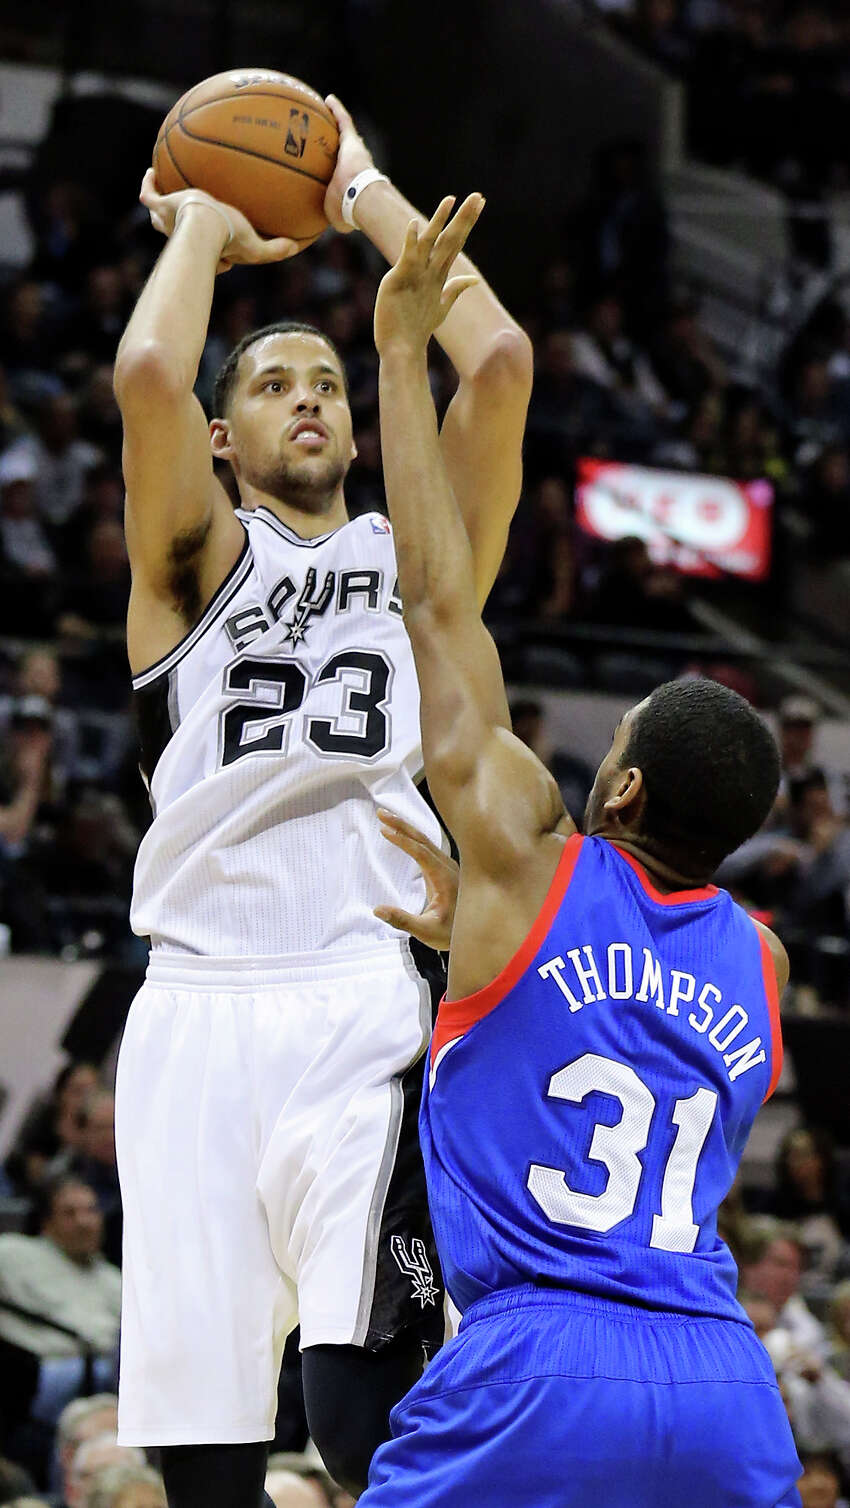 Austin Daye - Team option for 2014-15